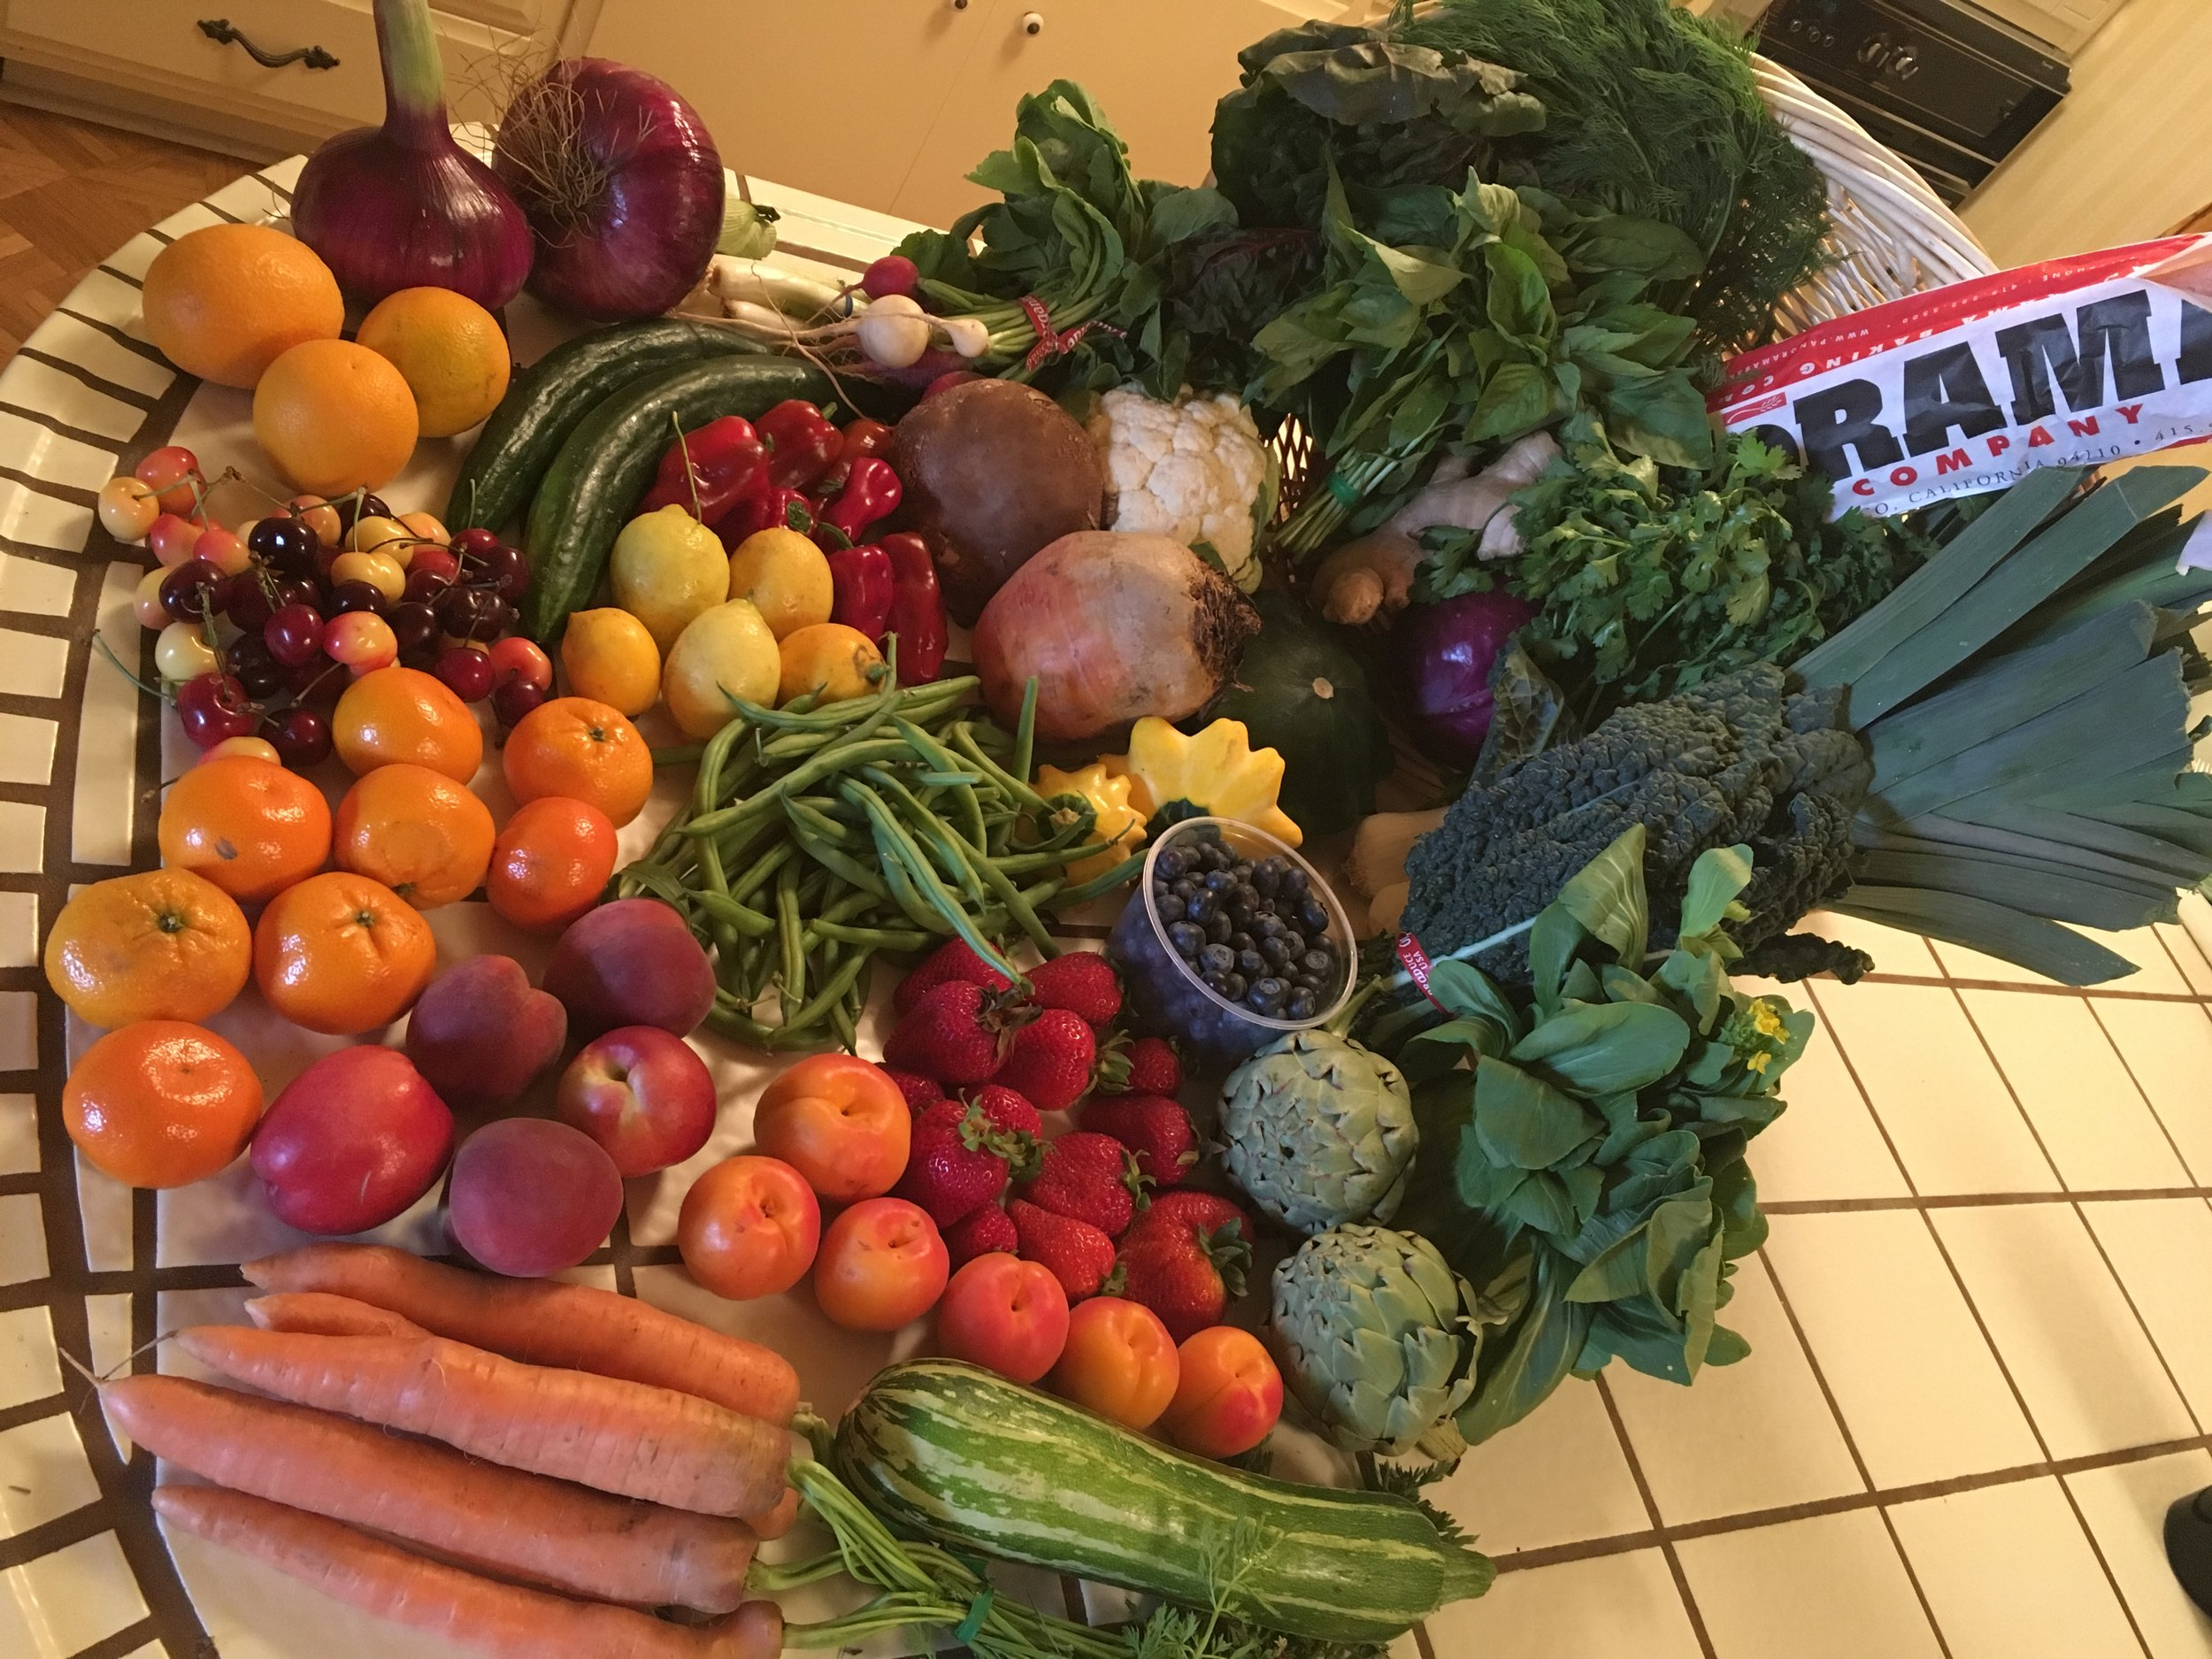 The Los Gatos Farmers' Market Basket 2017 (Spoiler the Willetts did not win this year's basket)